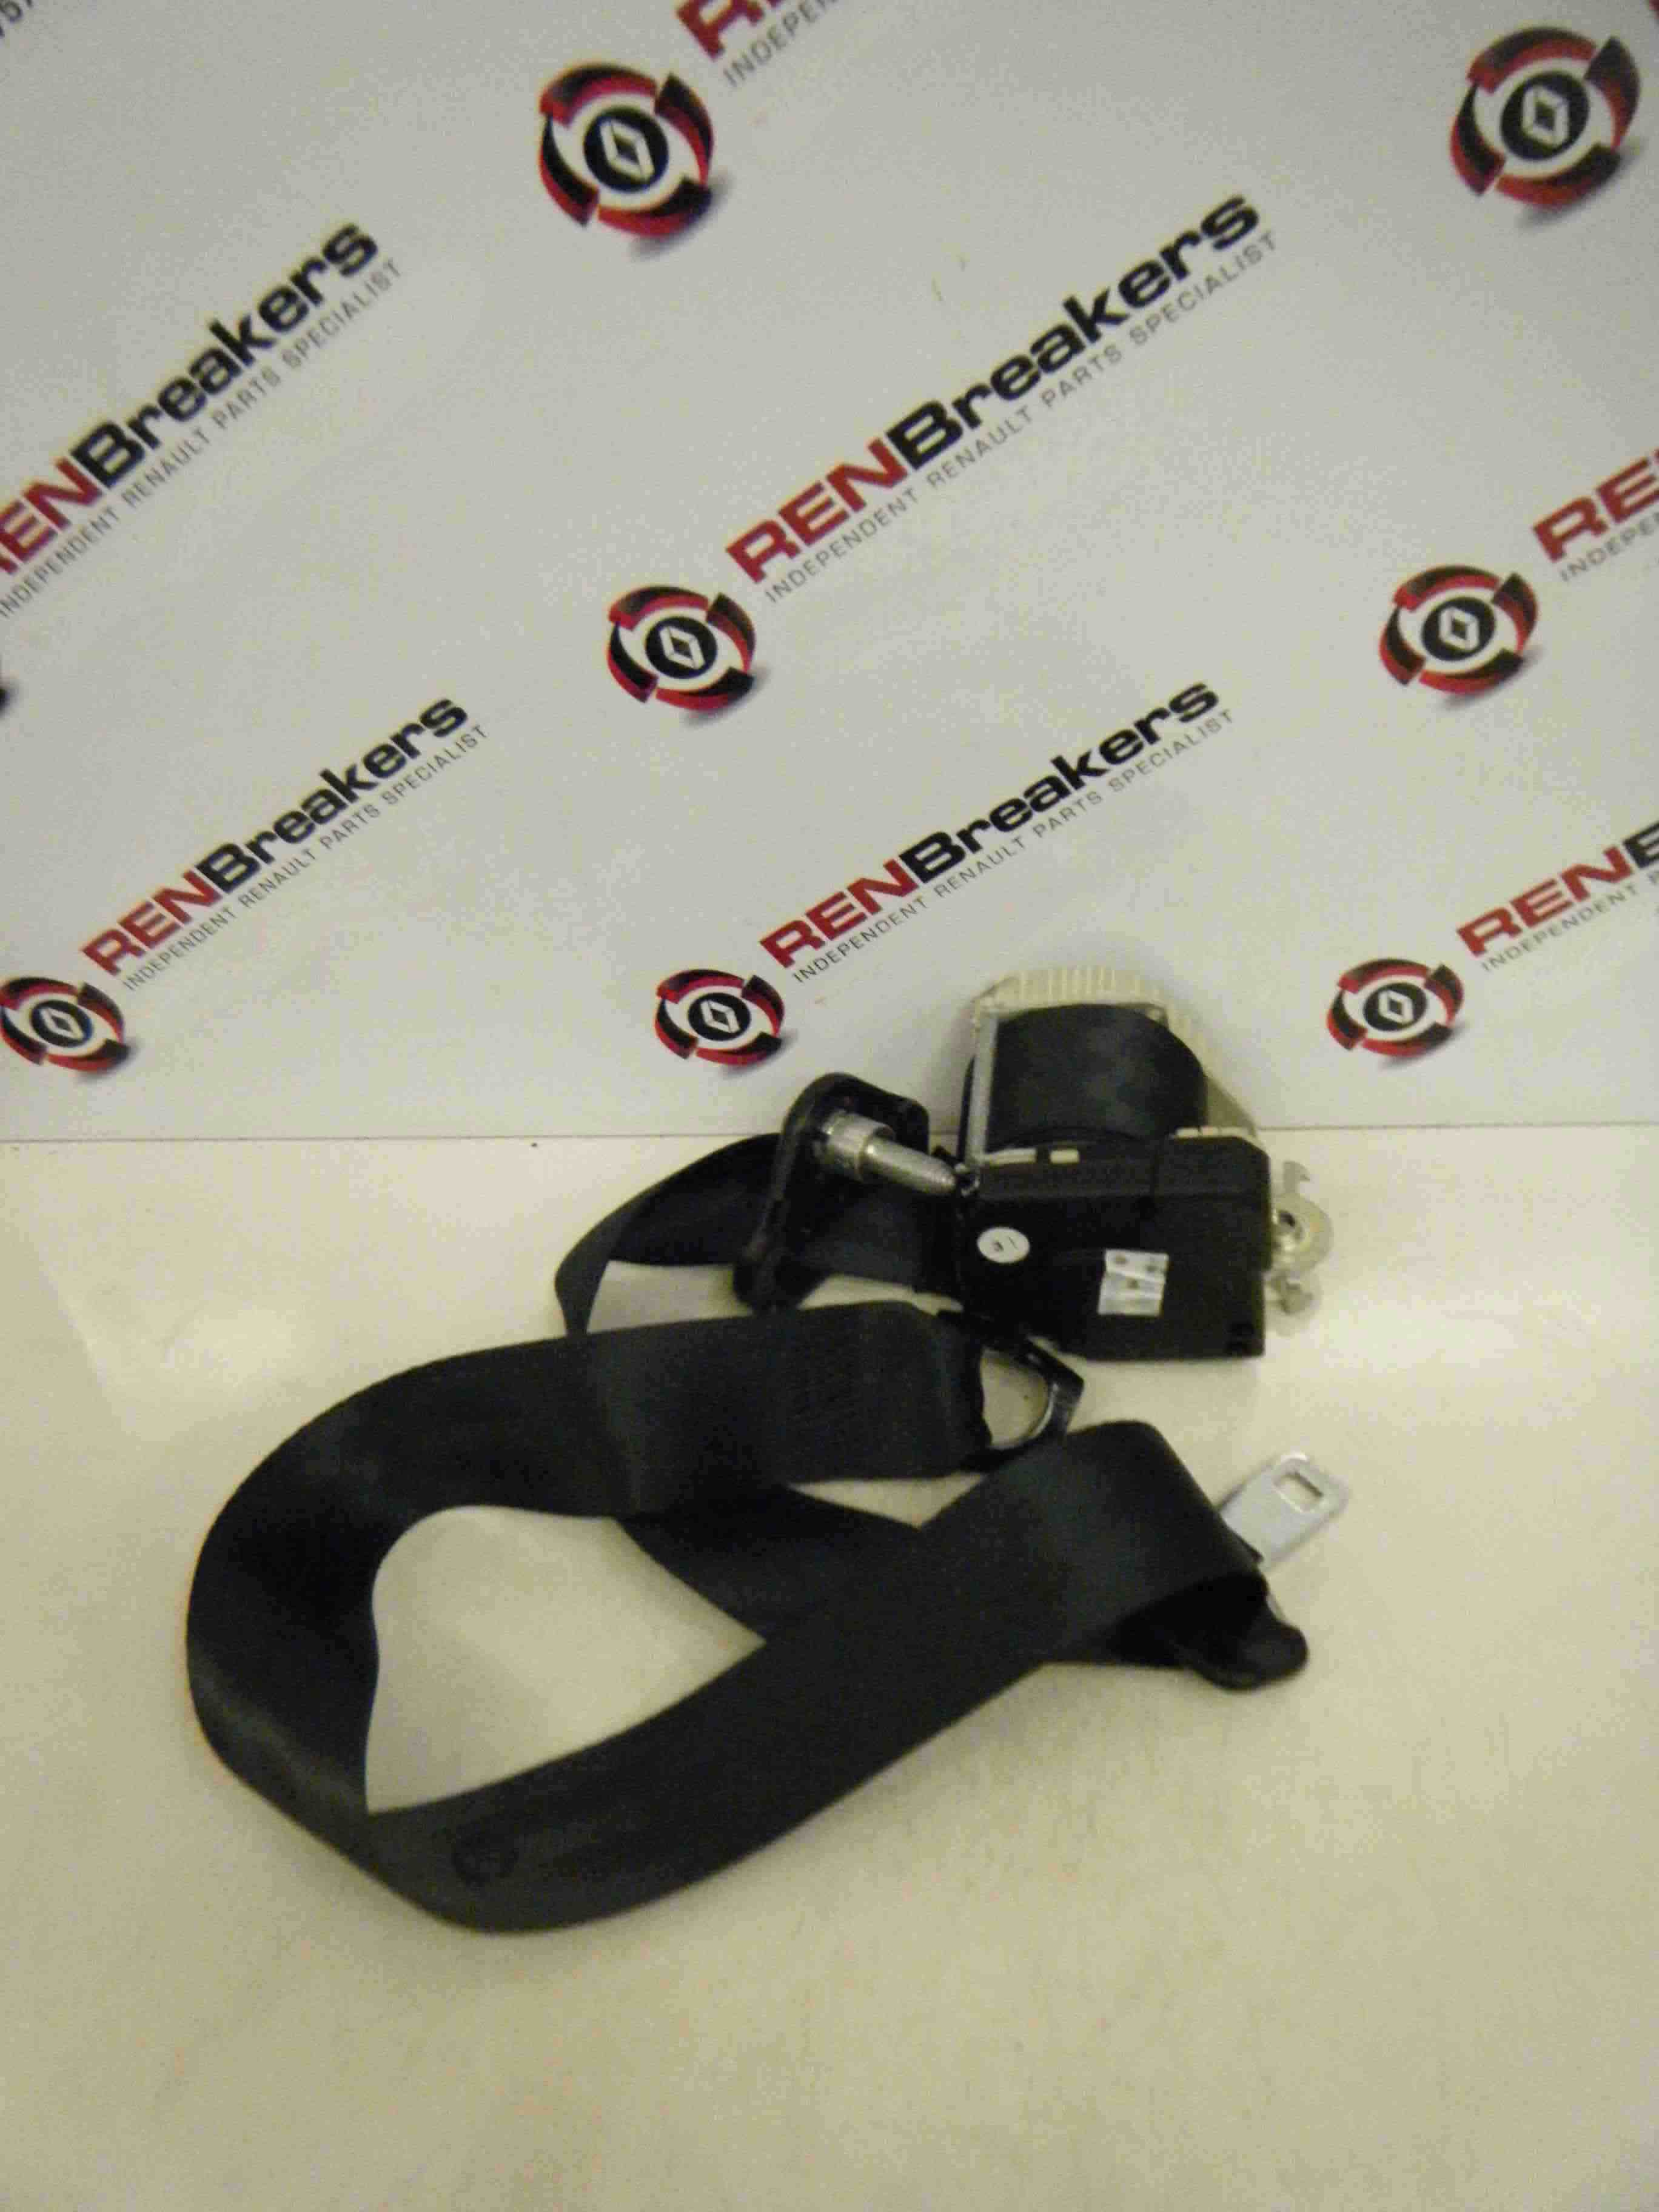 Renault Twingo 2007-2012 Drivers OSR Rear Seat Belt Black 3dr